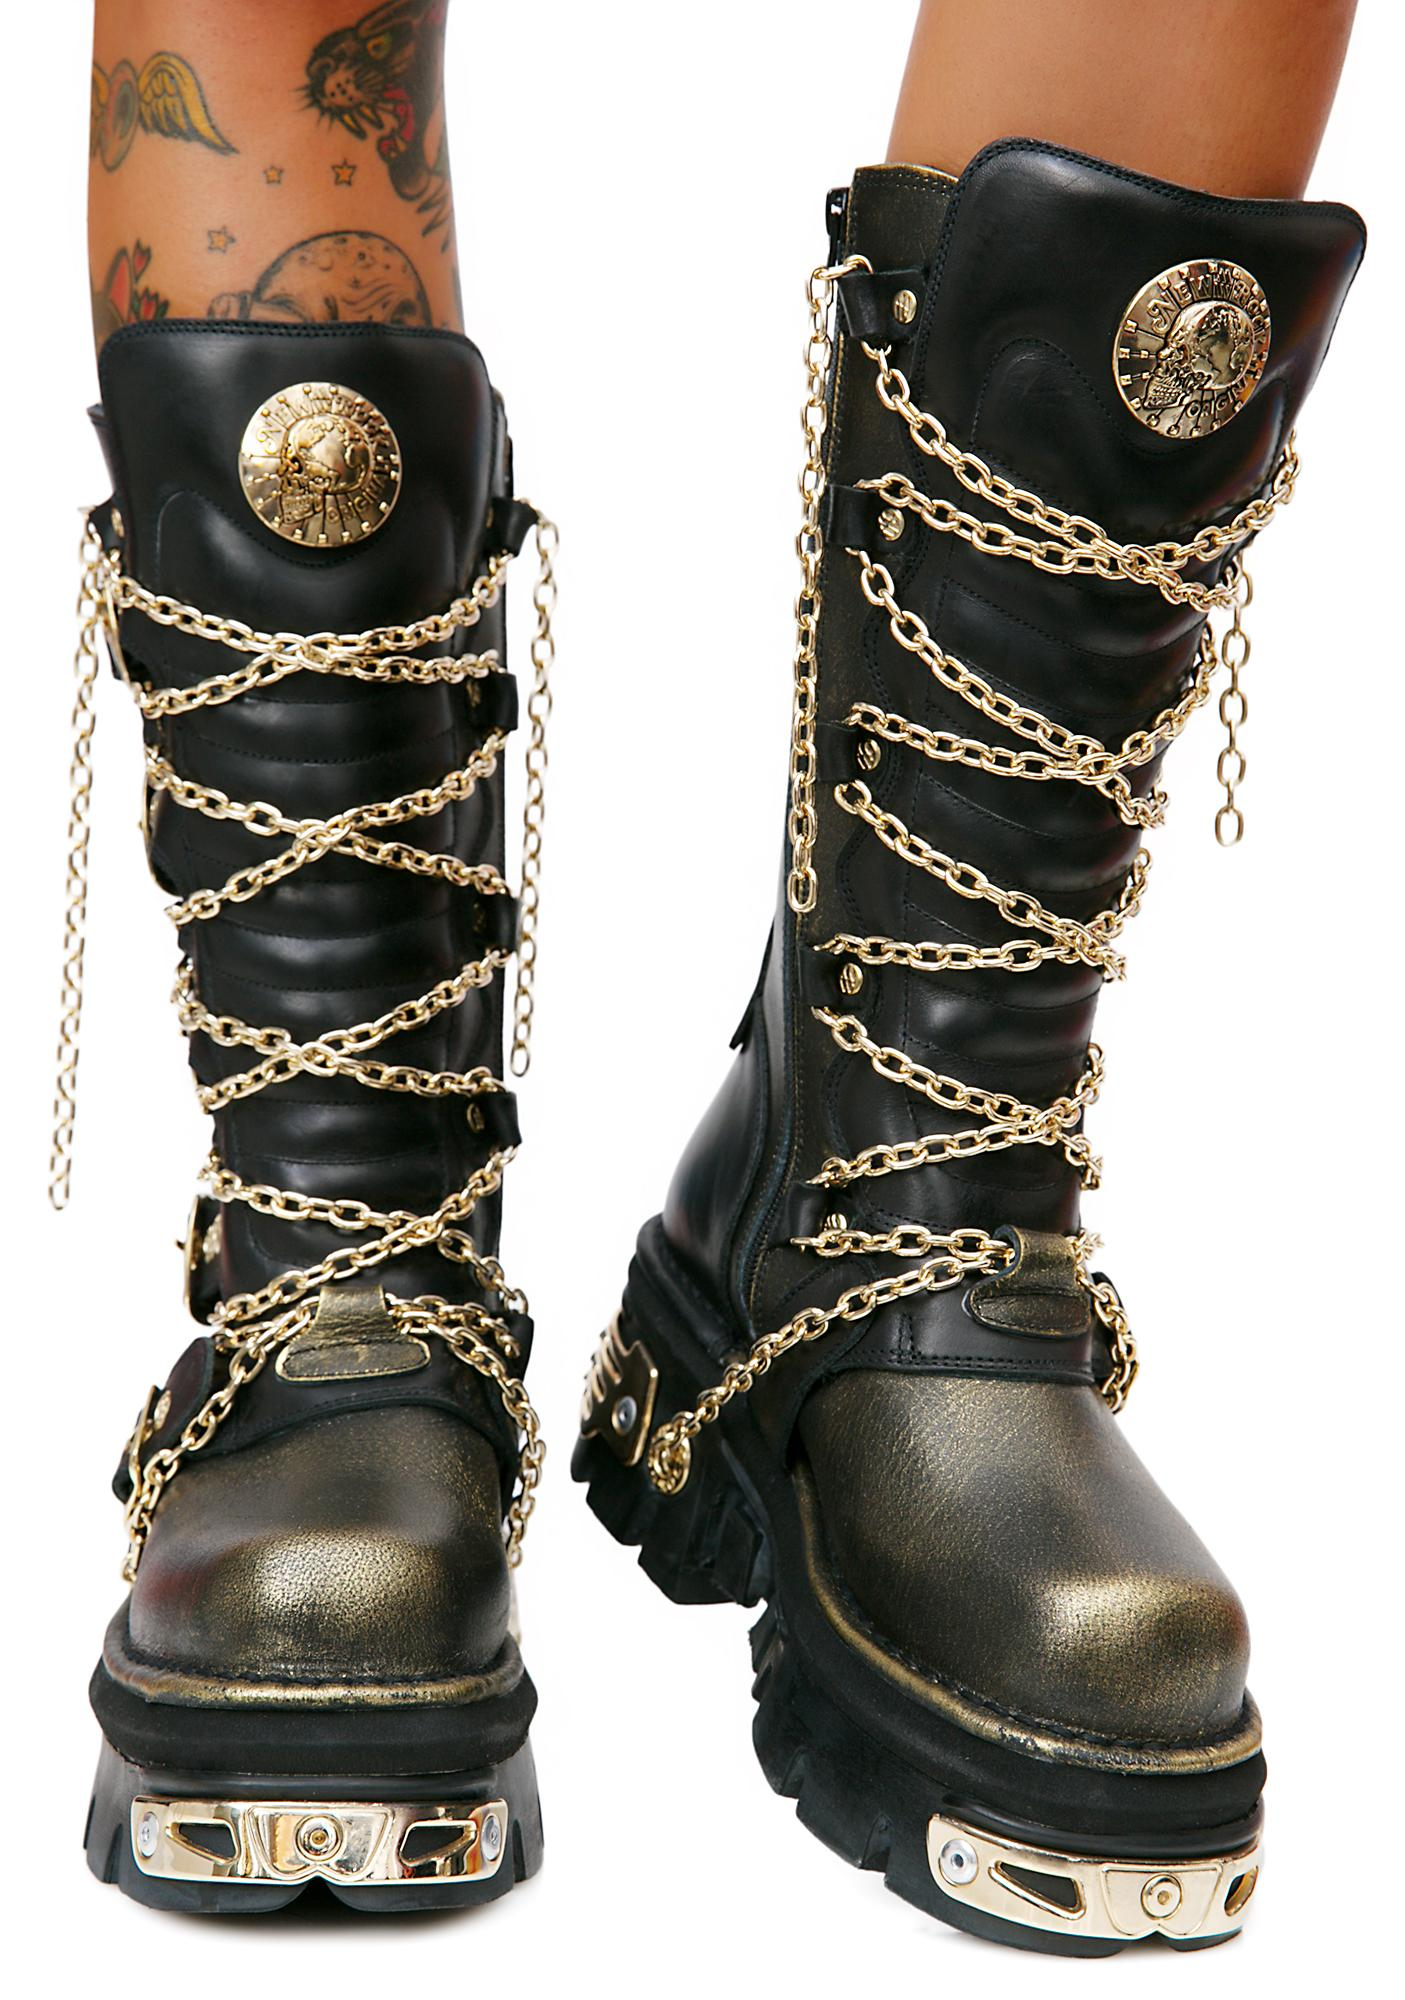 New Rock Golden Embers Chained Boots